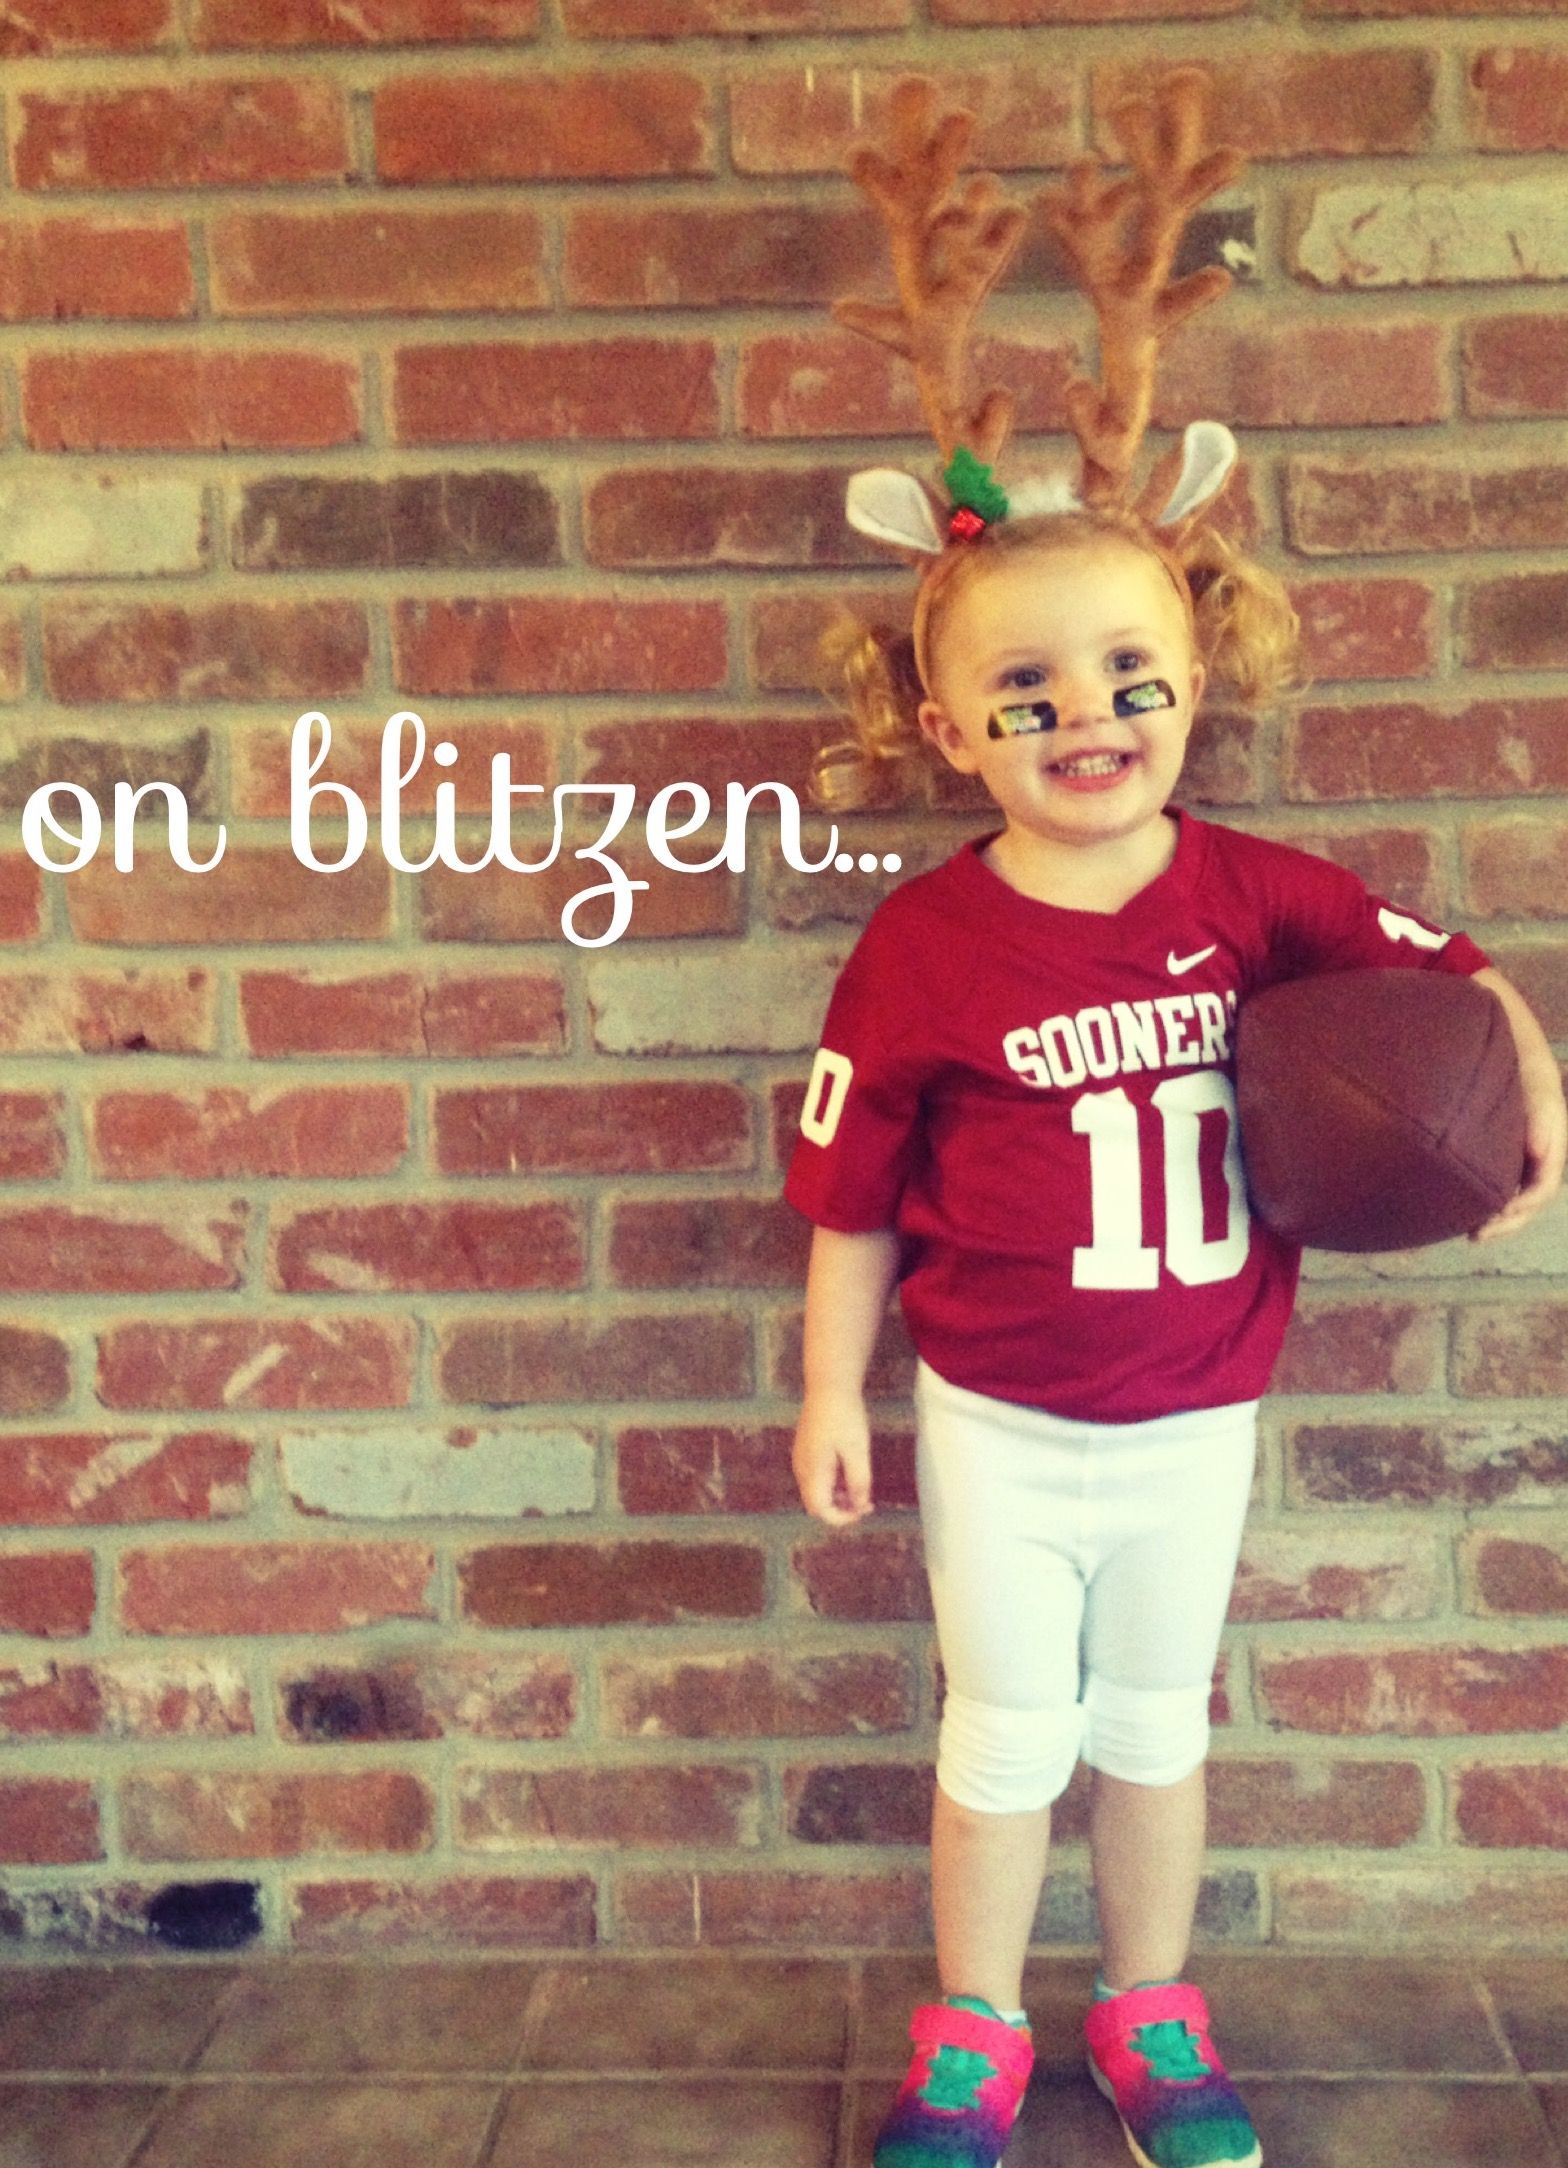 Blitzen - you better be ready for the blitz! Blitzen is Santa's defensive player of the year, holding the record for most sacks - TOY sacks, that is!